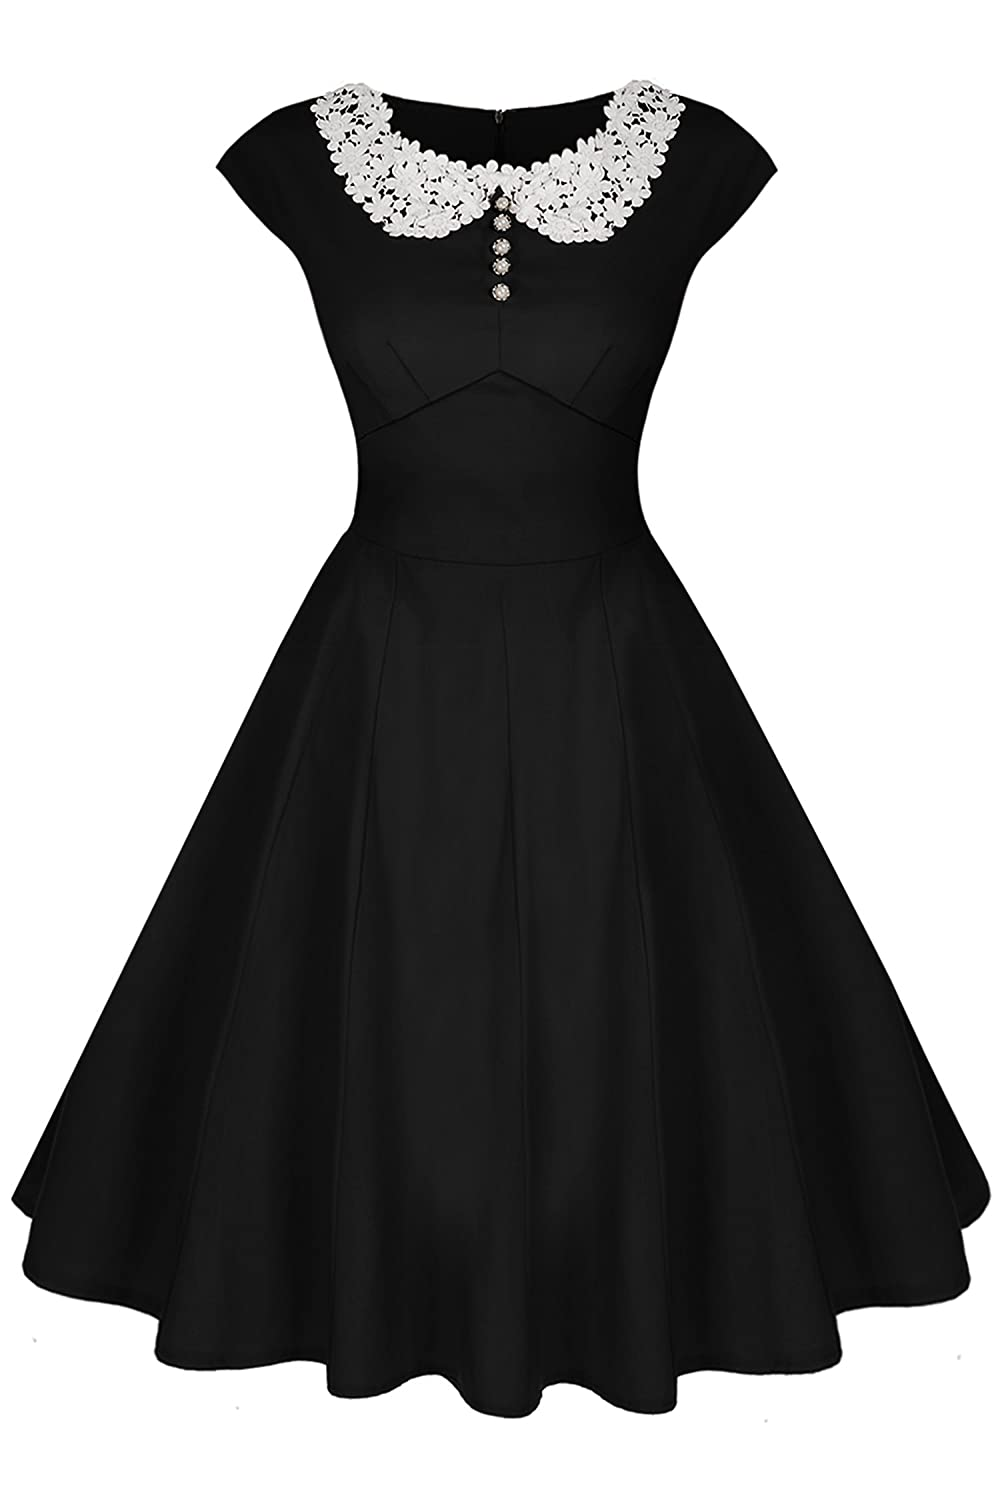 1940s Cocktail Dresses, Party Dresses